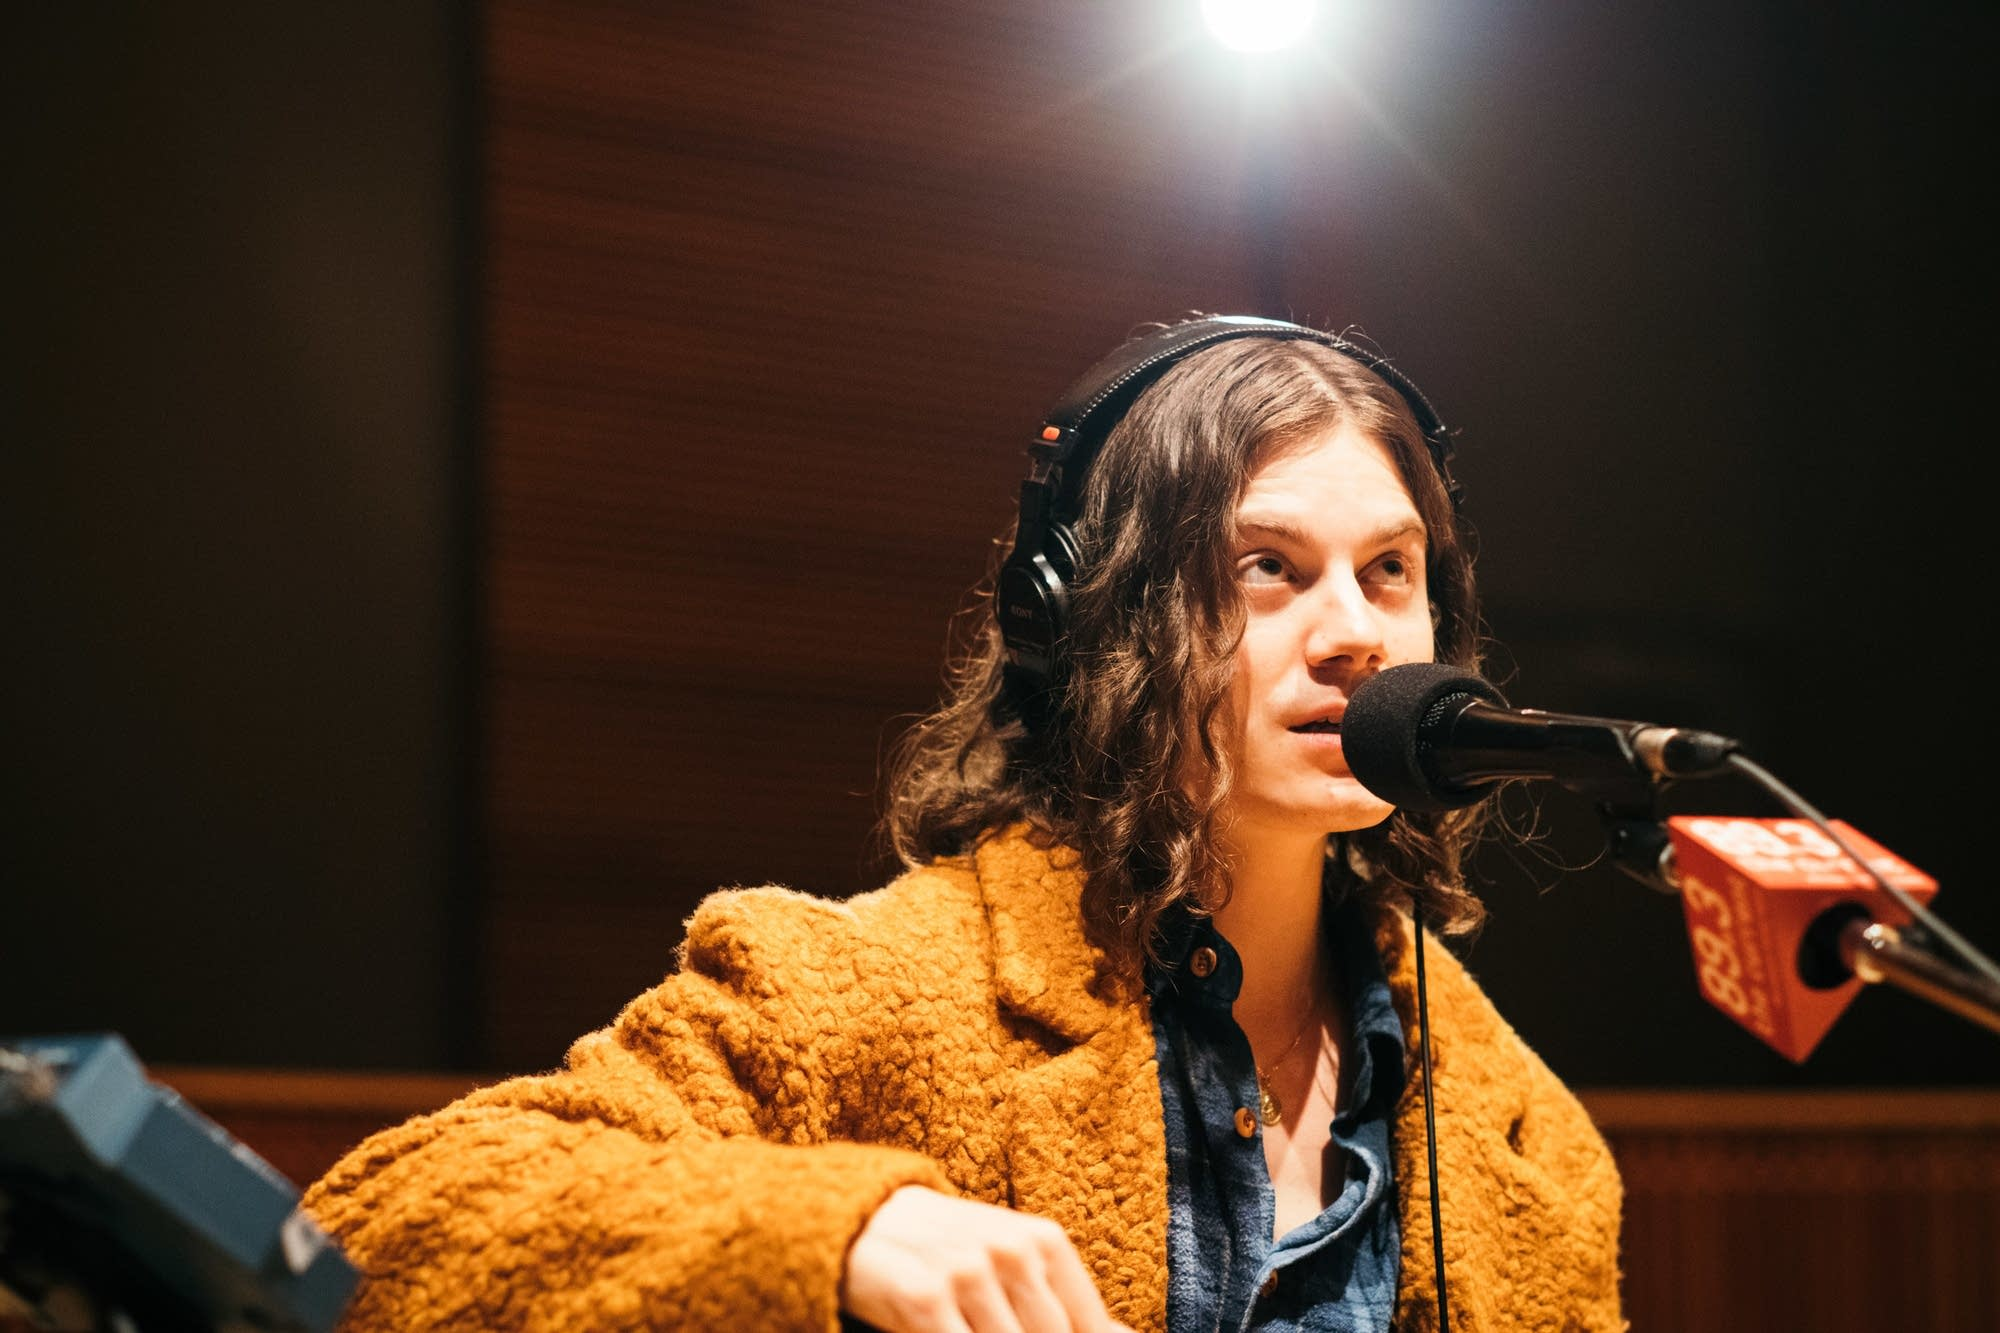 BORNS performs in The Current studio